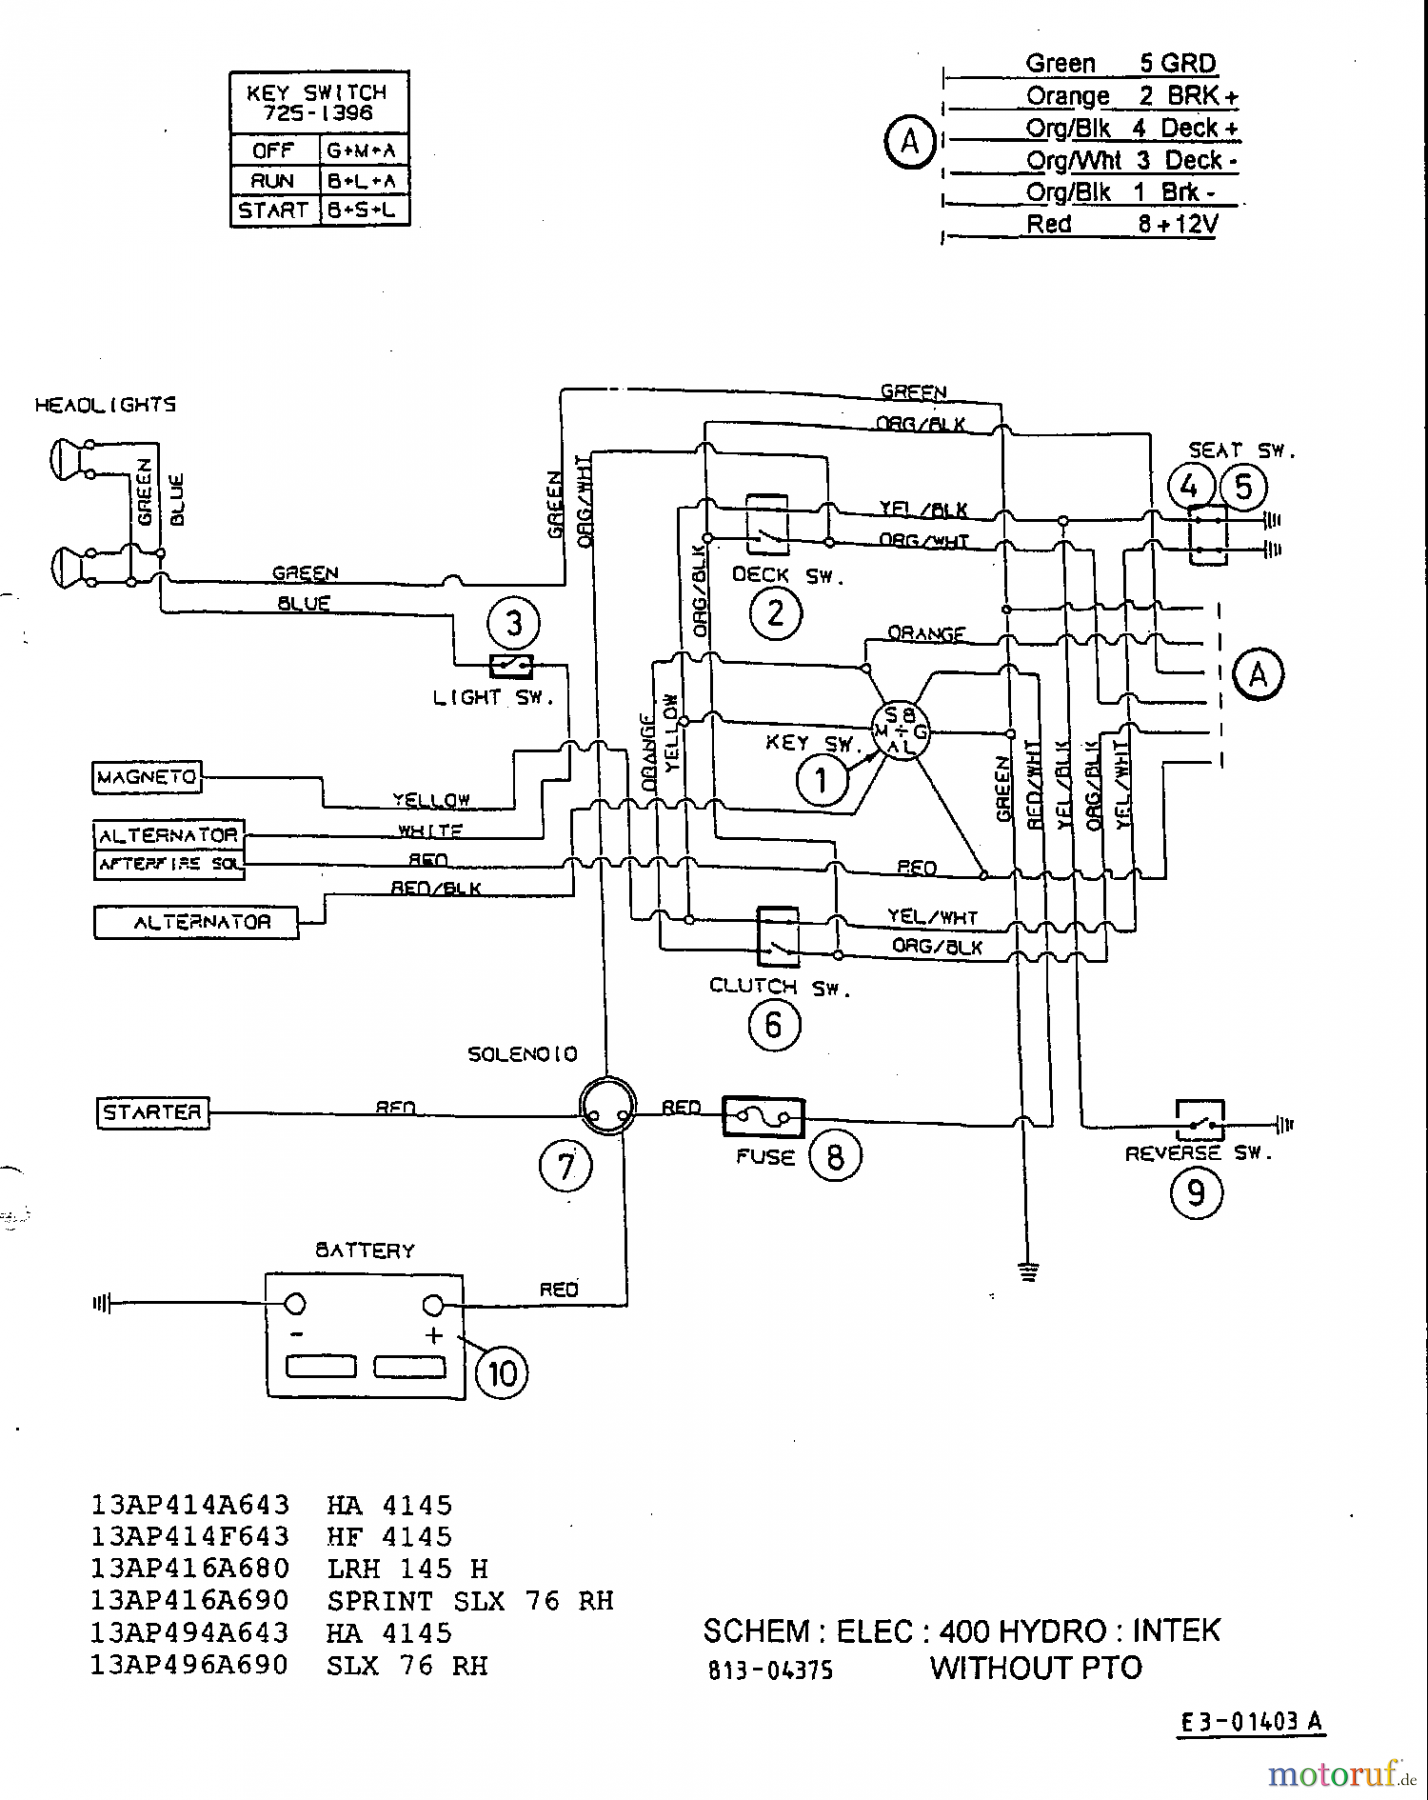 Mtd Riding Mower Wiring Diagram With Yard Machine On | mtd ride on